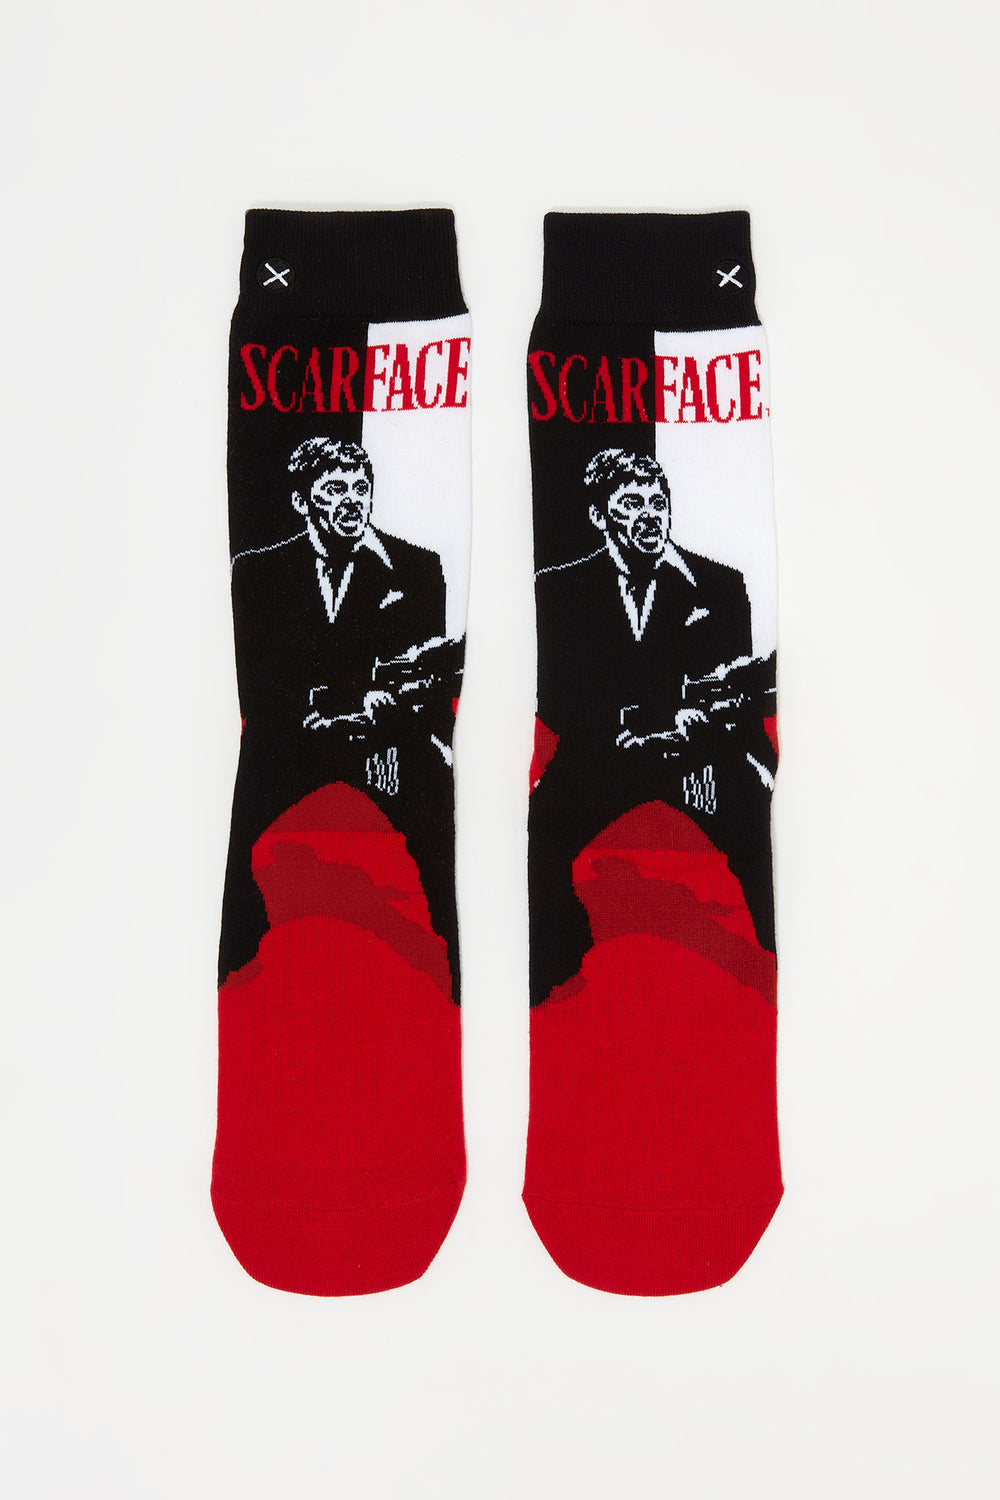 Odd Sox Mens Scarface Graphic Crew Socks Red